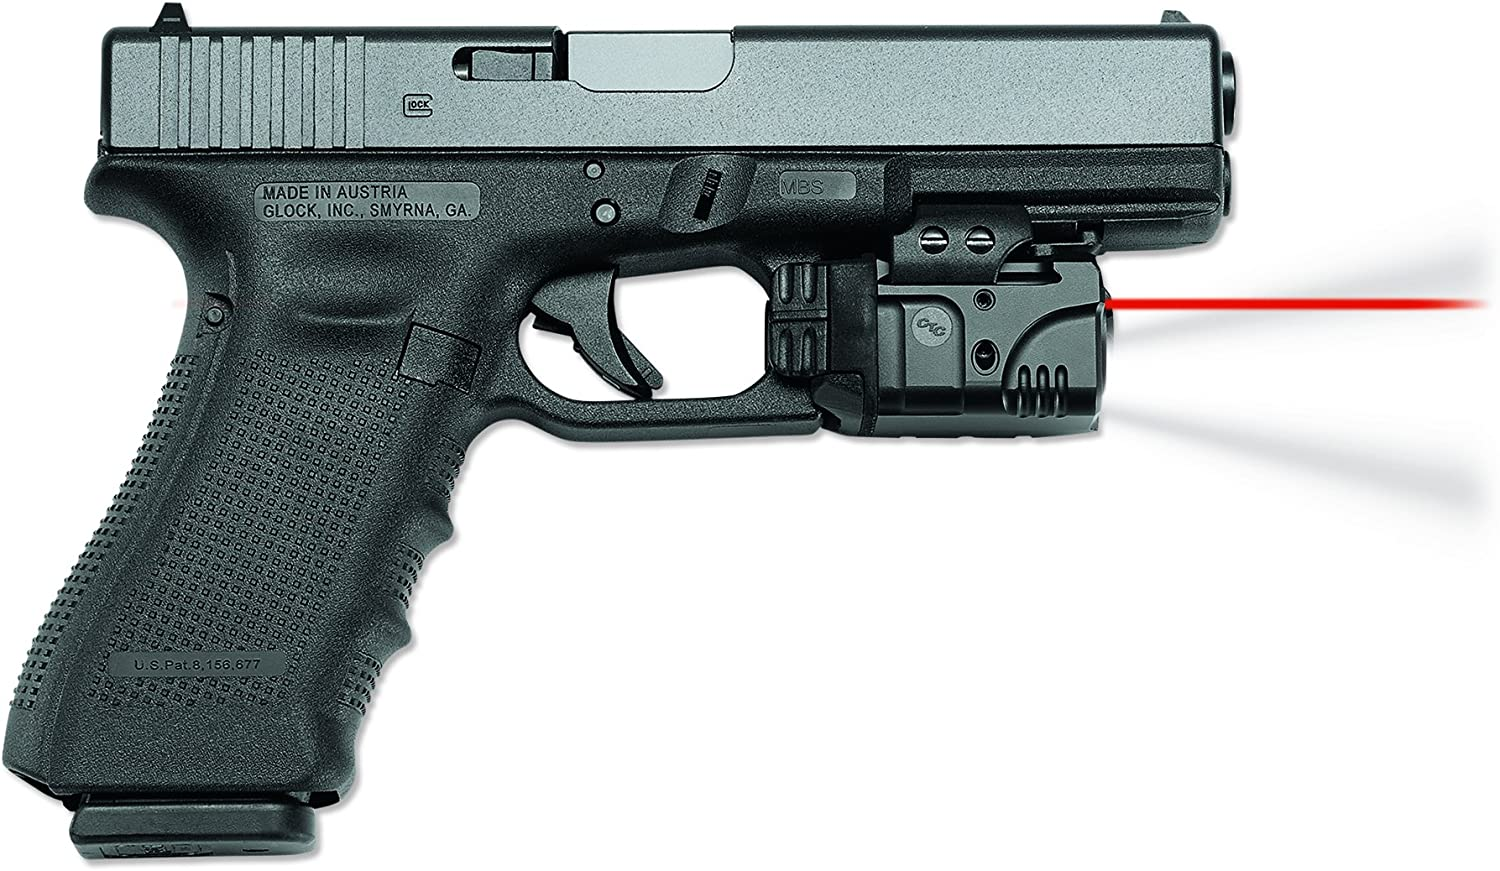 Crimson Trace CMR-204 CMR-205 Rail Master Pro Universal Laser Tactical Light